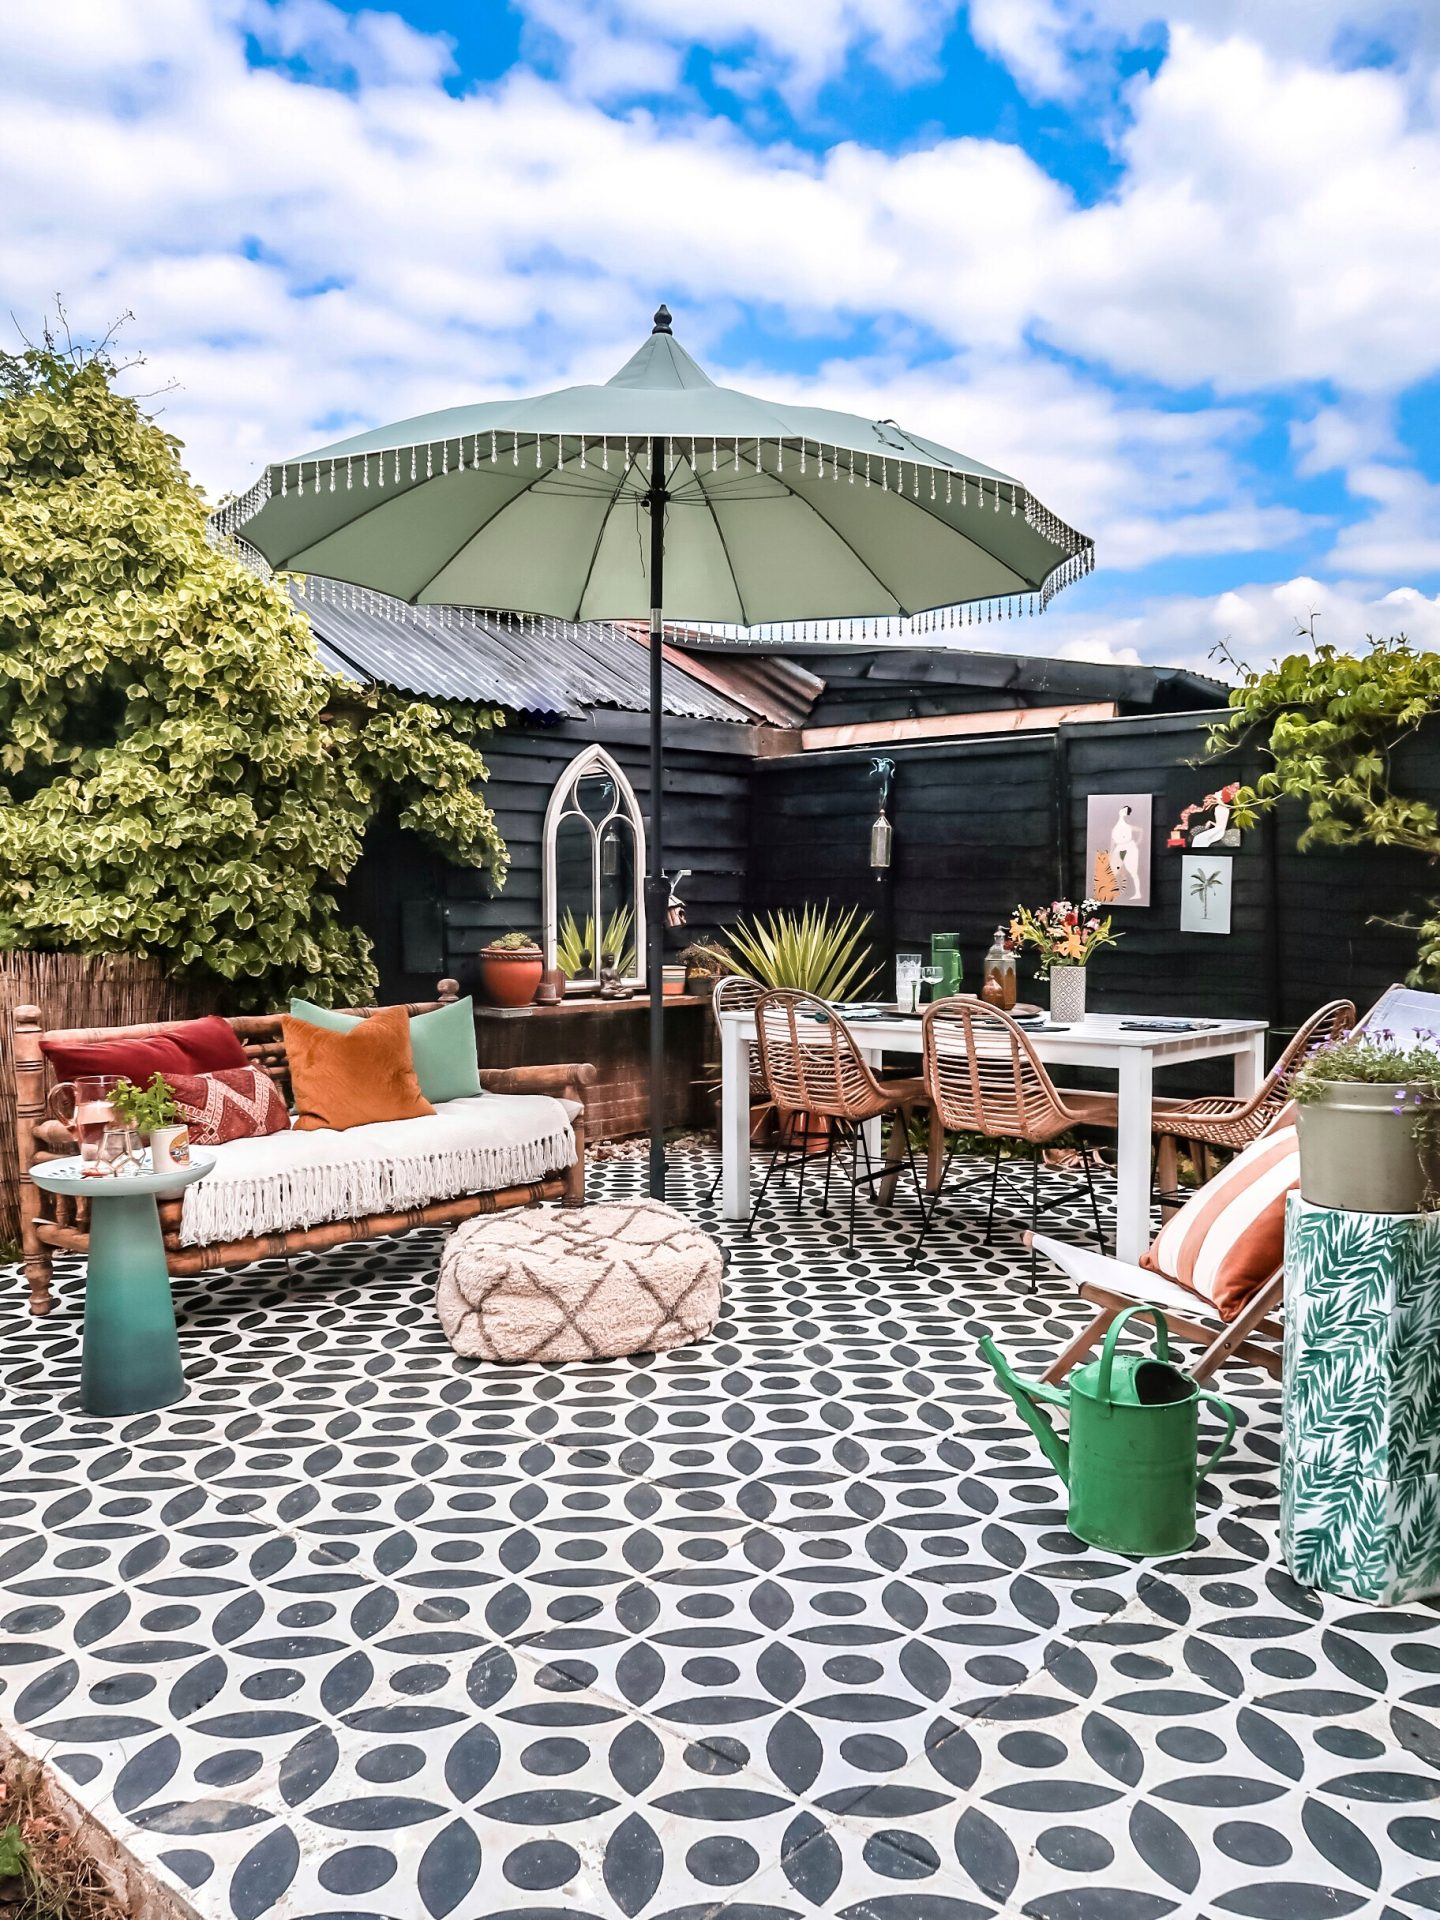 My stencilled patio a year on…